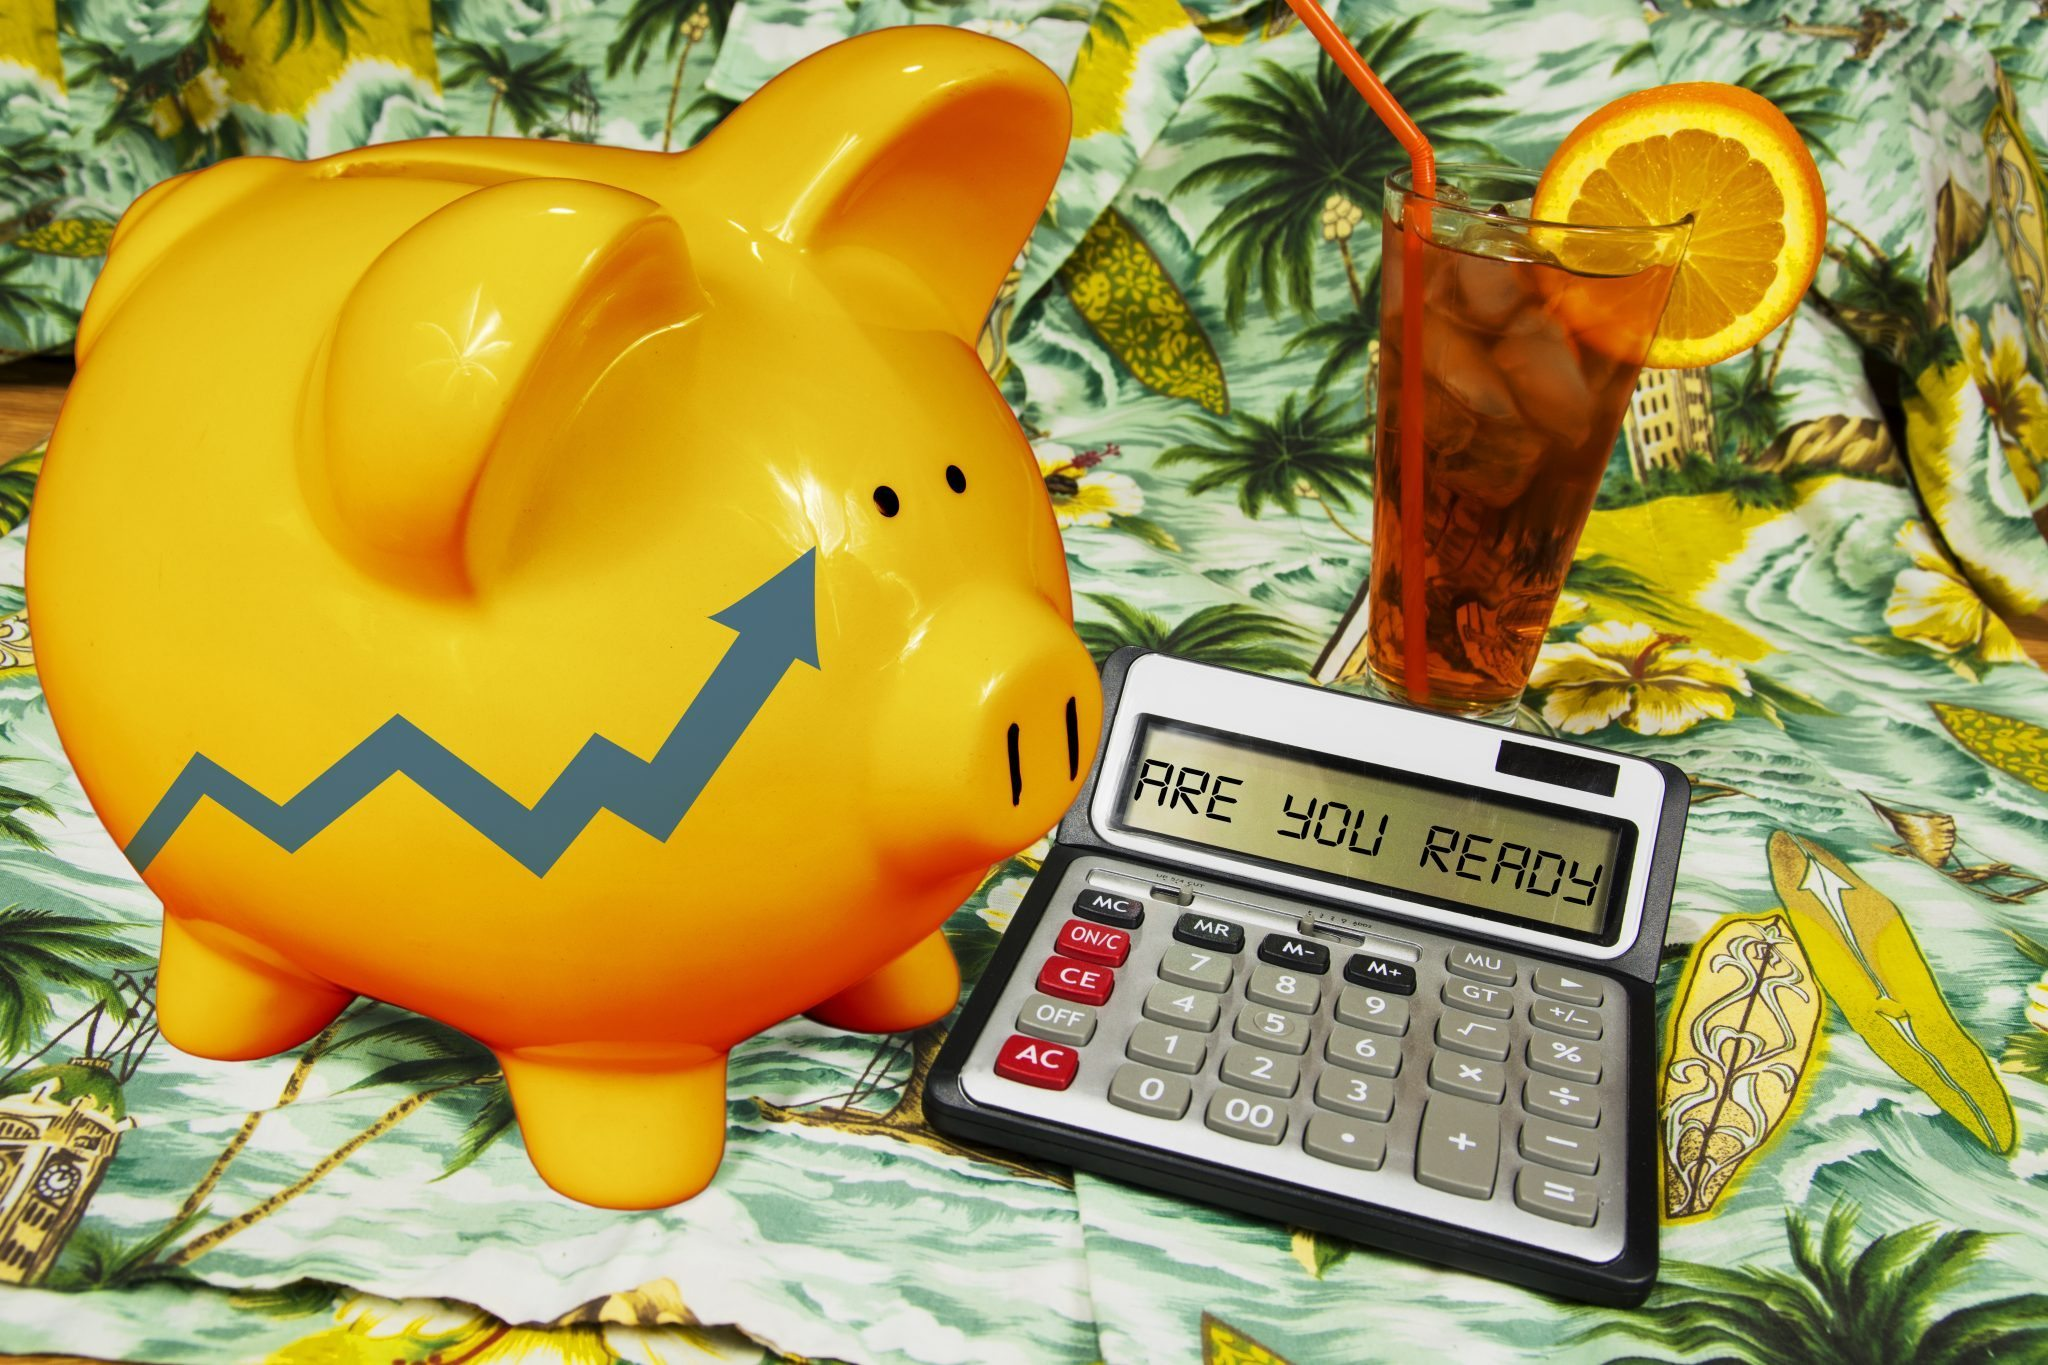 Baby Boomers appreciate residual income programmes